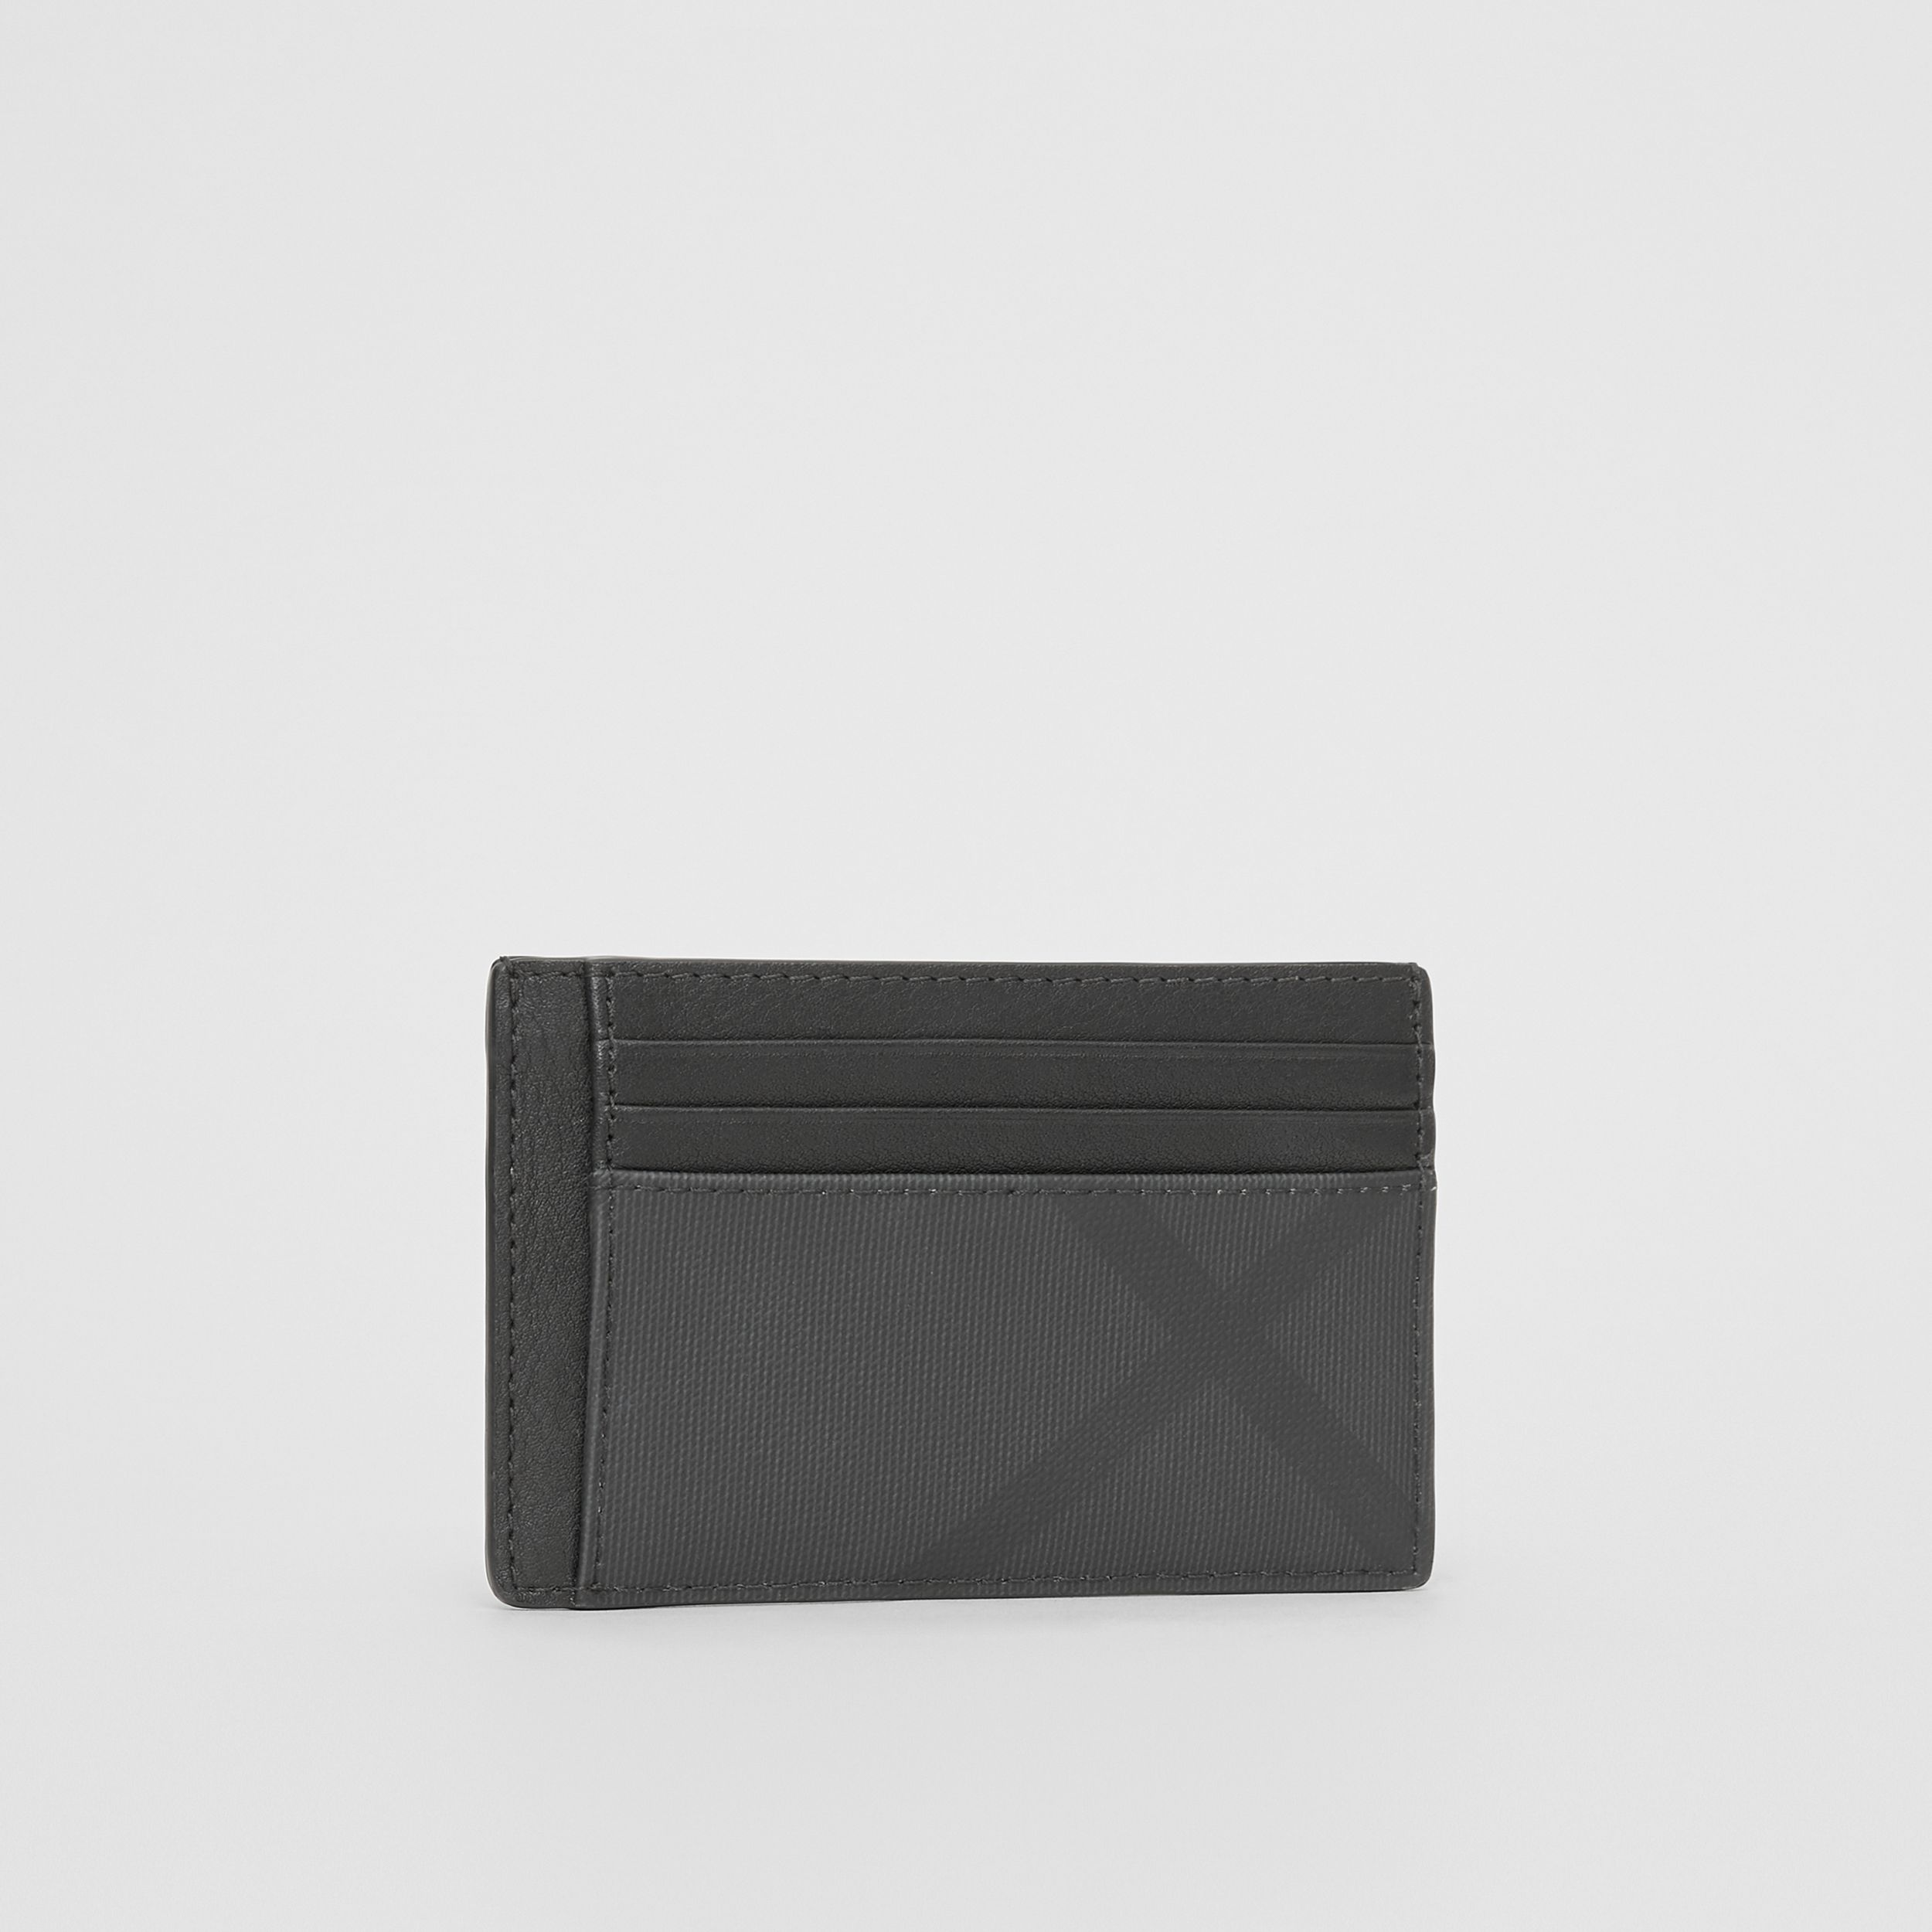 London Check and Leather Money Clip Card Case in Dark Charcoal - Men | Burberry Canada - 4